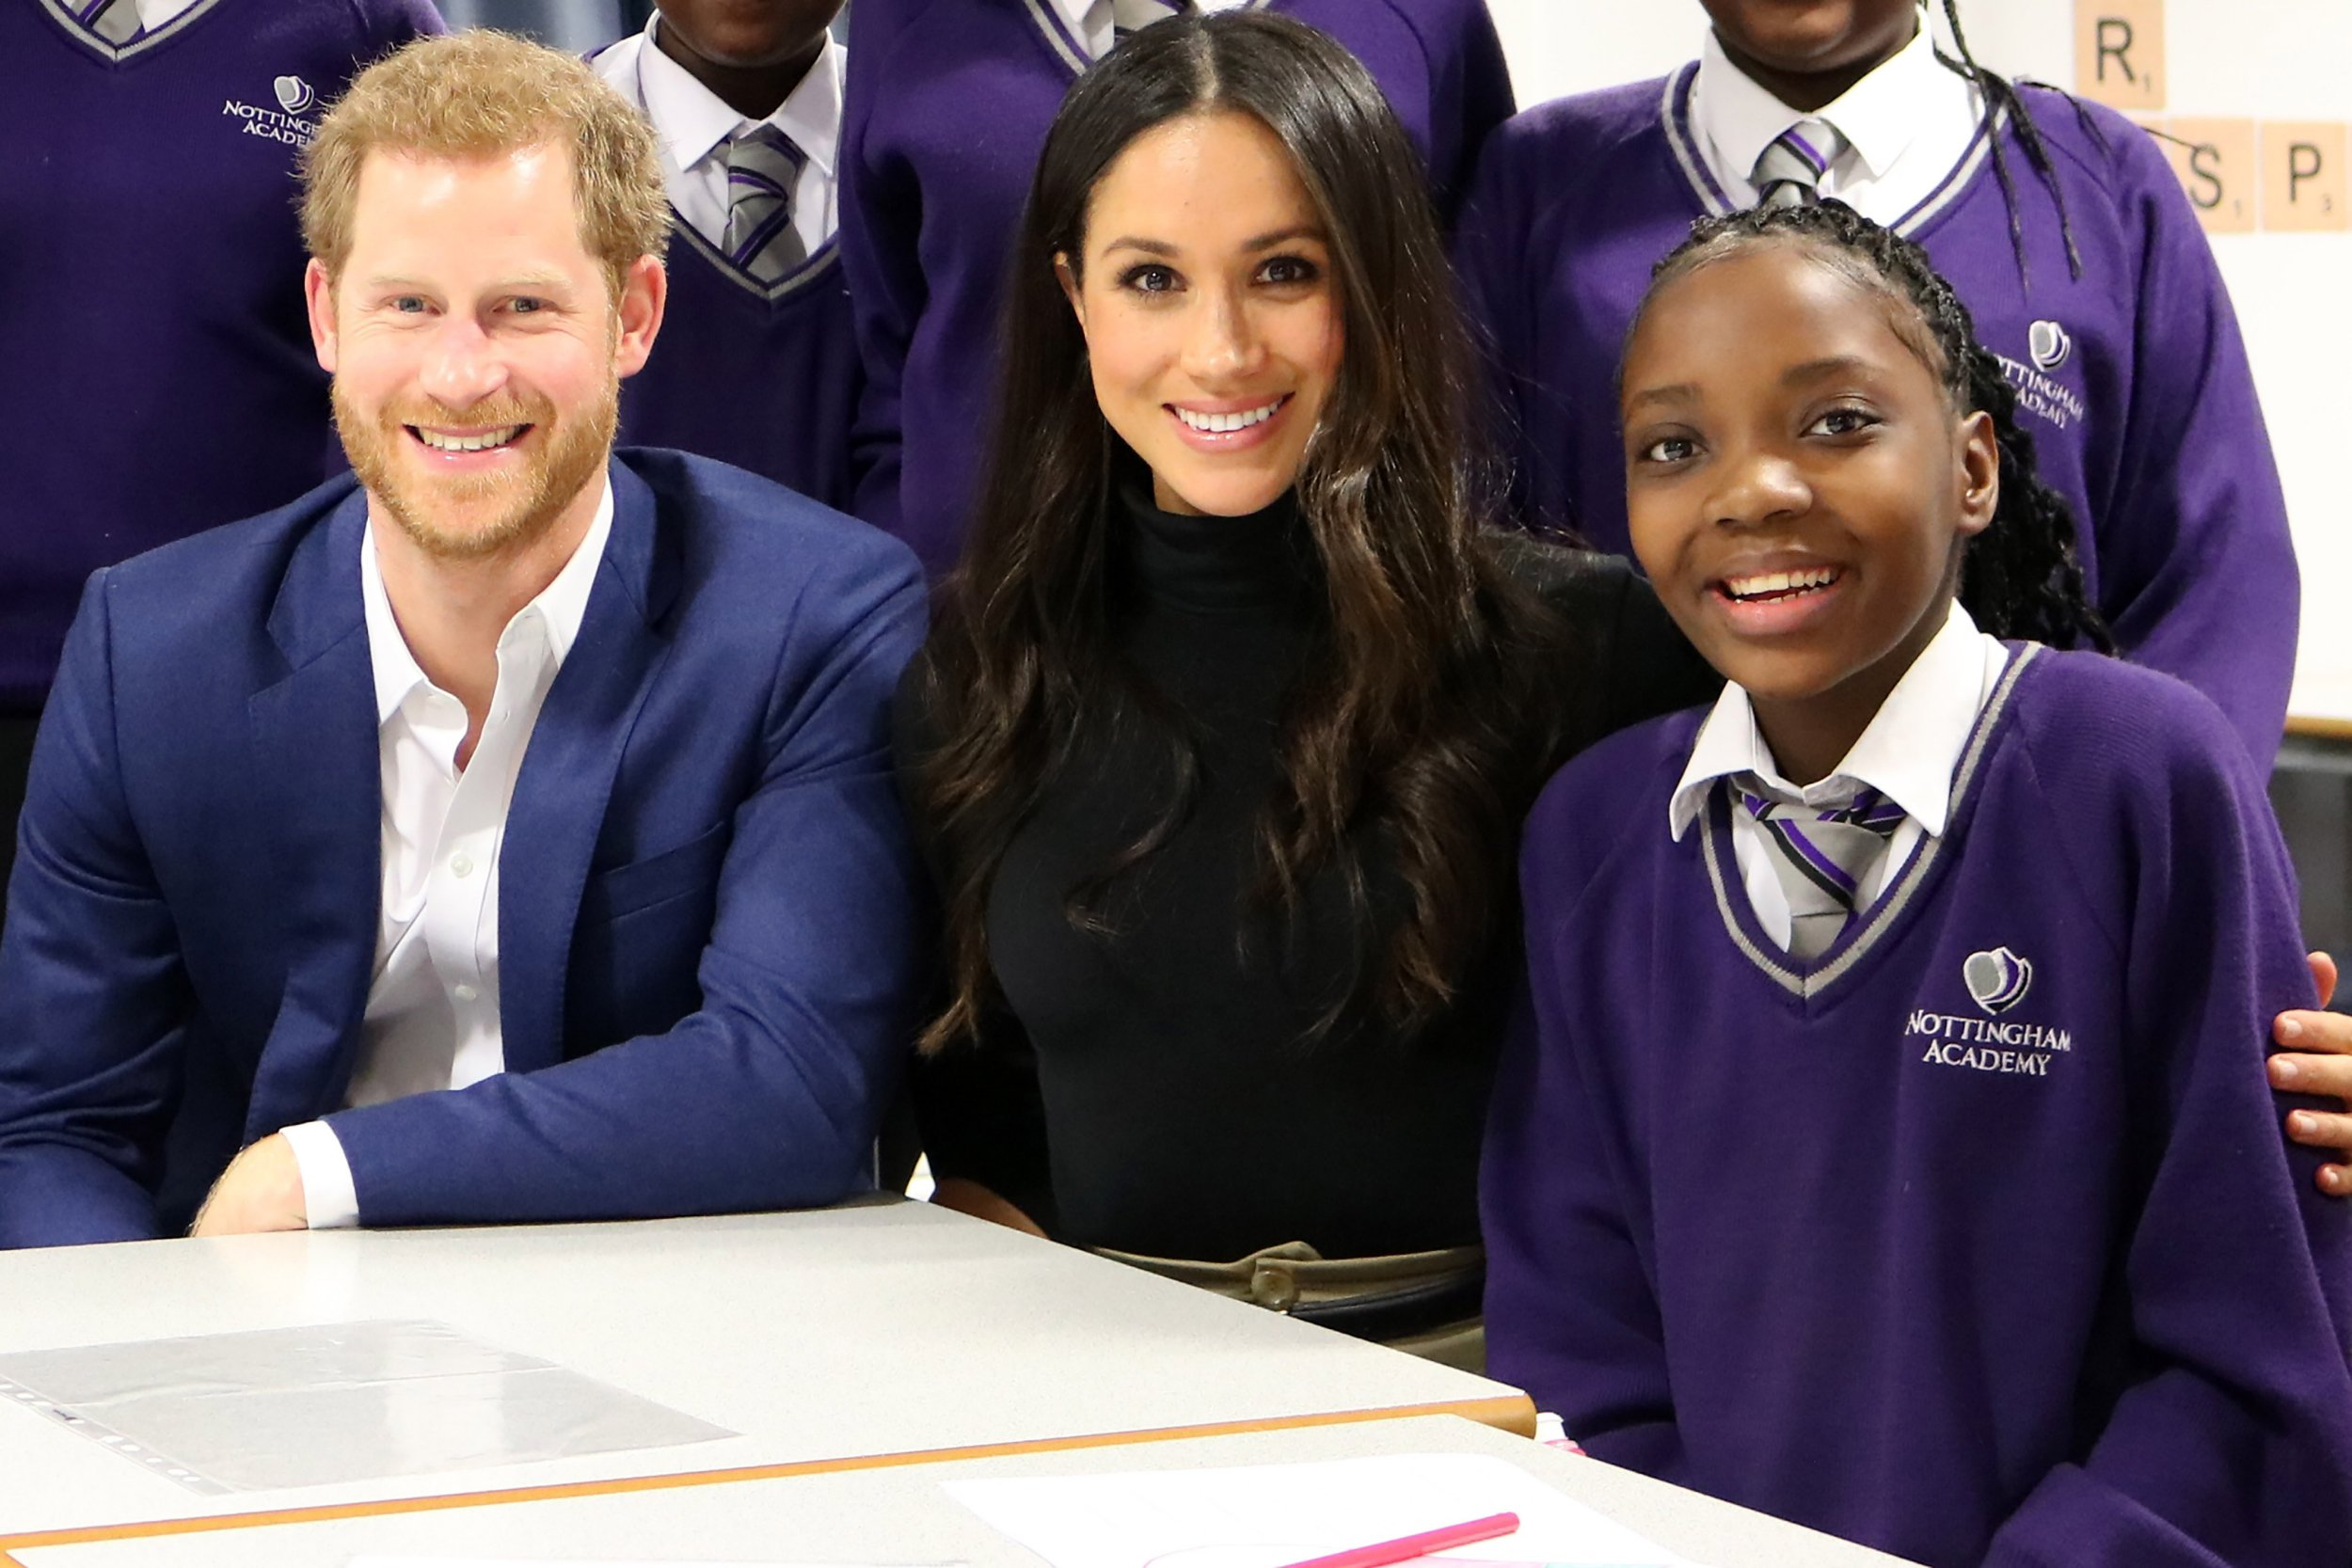 Pics from Caters News - (Pictured: Prince Harry with his fiance Meghan Markle and Nottingham school girl Leonora Ncomanzi) - A schoolgirl with dreams of becoming an actress has been handed an invite to the Royal Wedding after <a href=